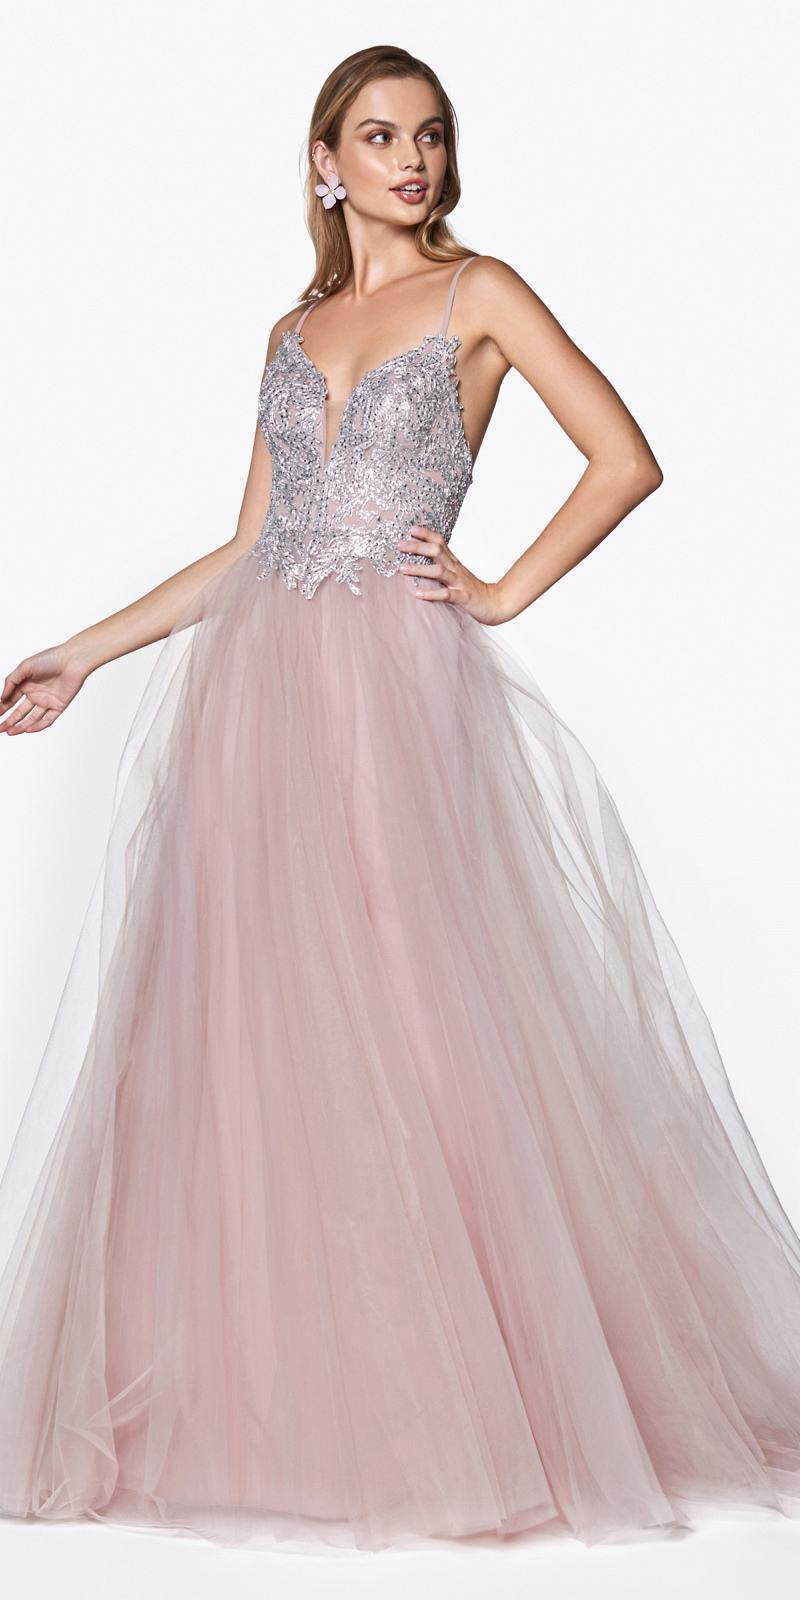 Criss Cross Tulle Dress